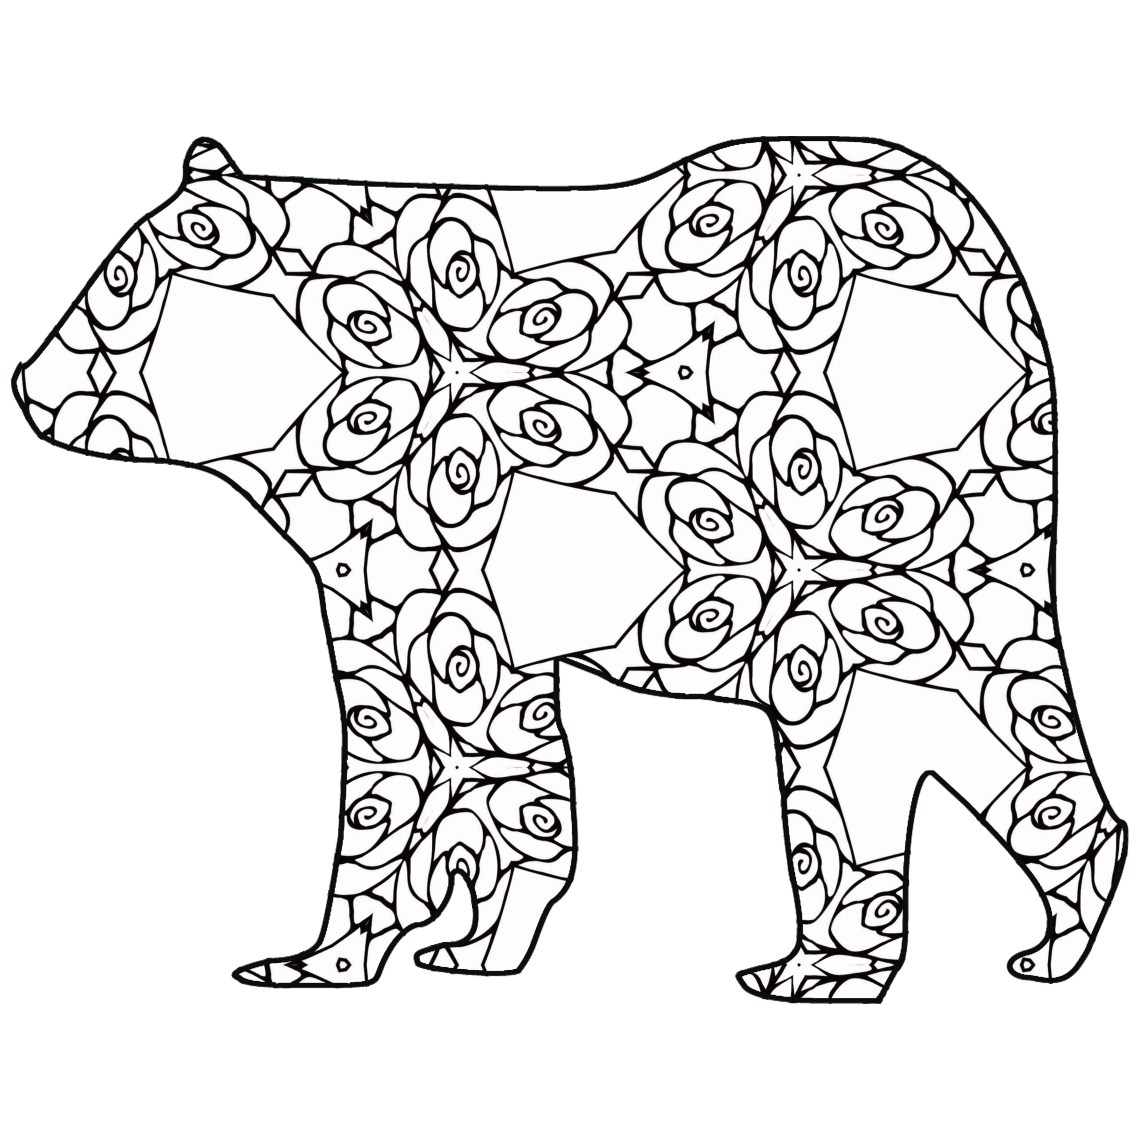 30 Free Coloring Pages /// A Geometric Animal Coloring ... | free online coloring pages animals